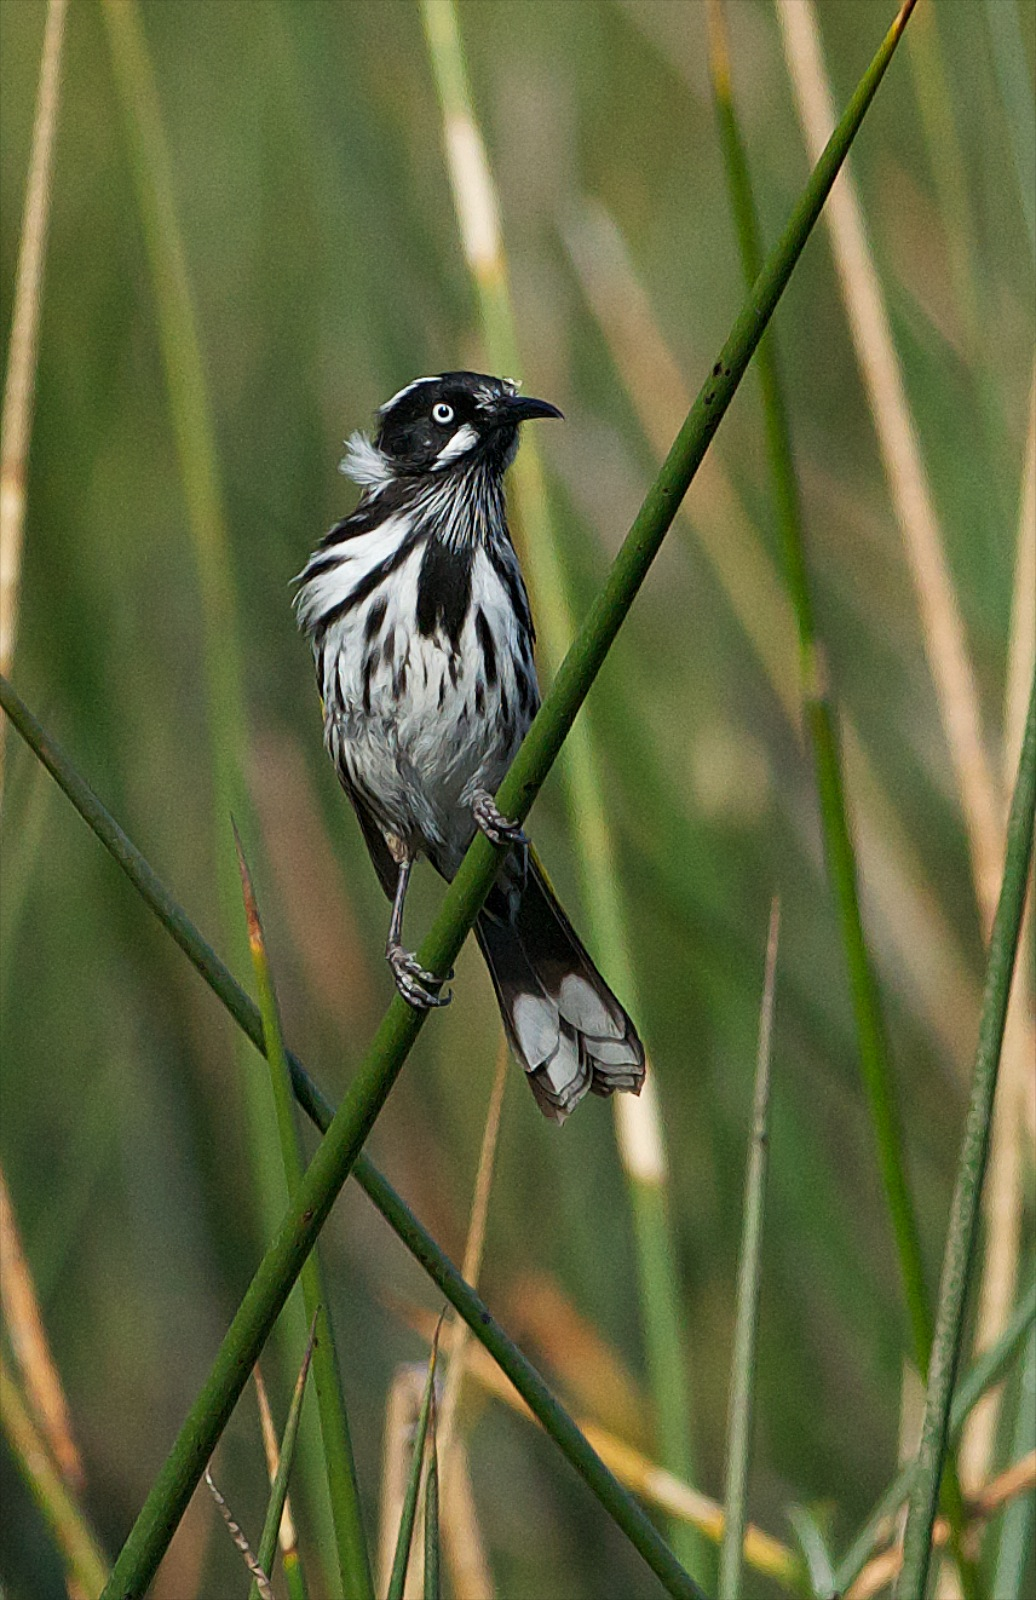 New Holland Honeyeater. This little bird I think would have posed for me all day. It didn't seem bothered by my presence as it went about its daily chores